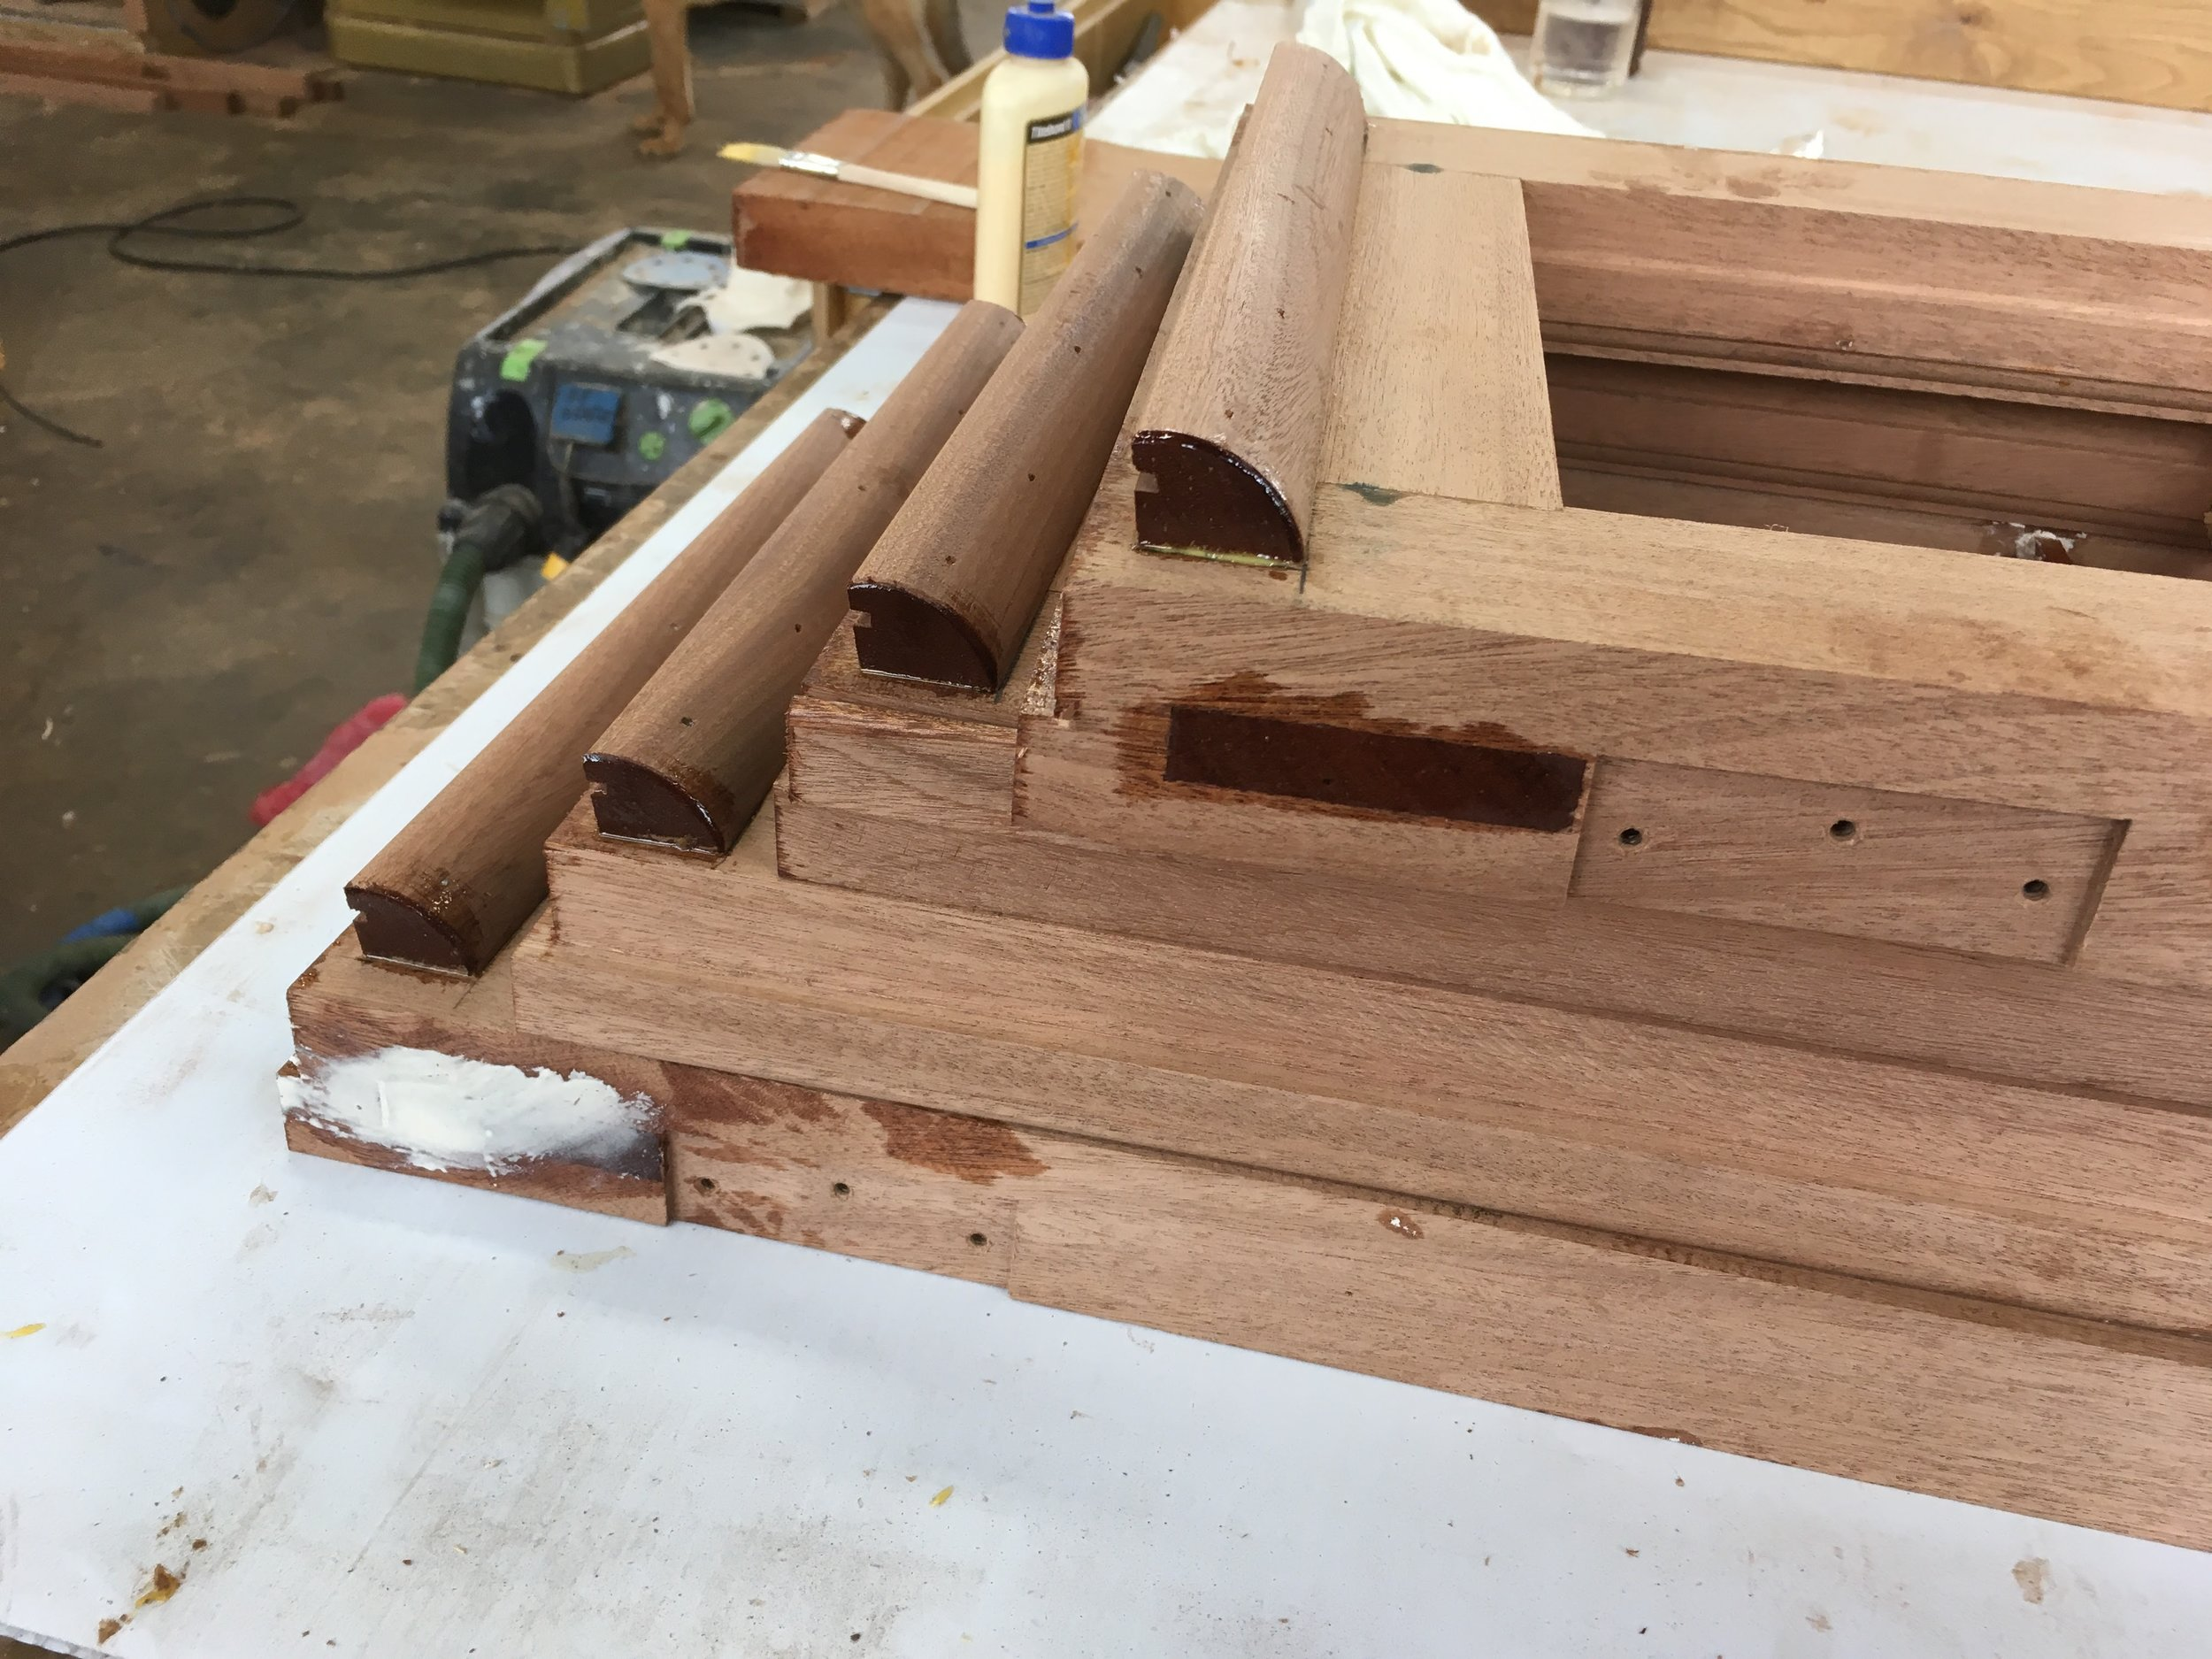 These mahogany sash reproductions receive a traditional drip edge molding and modern epoxy to seal end grain.